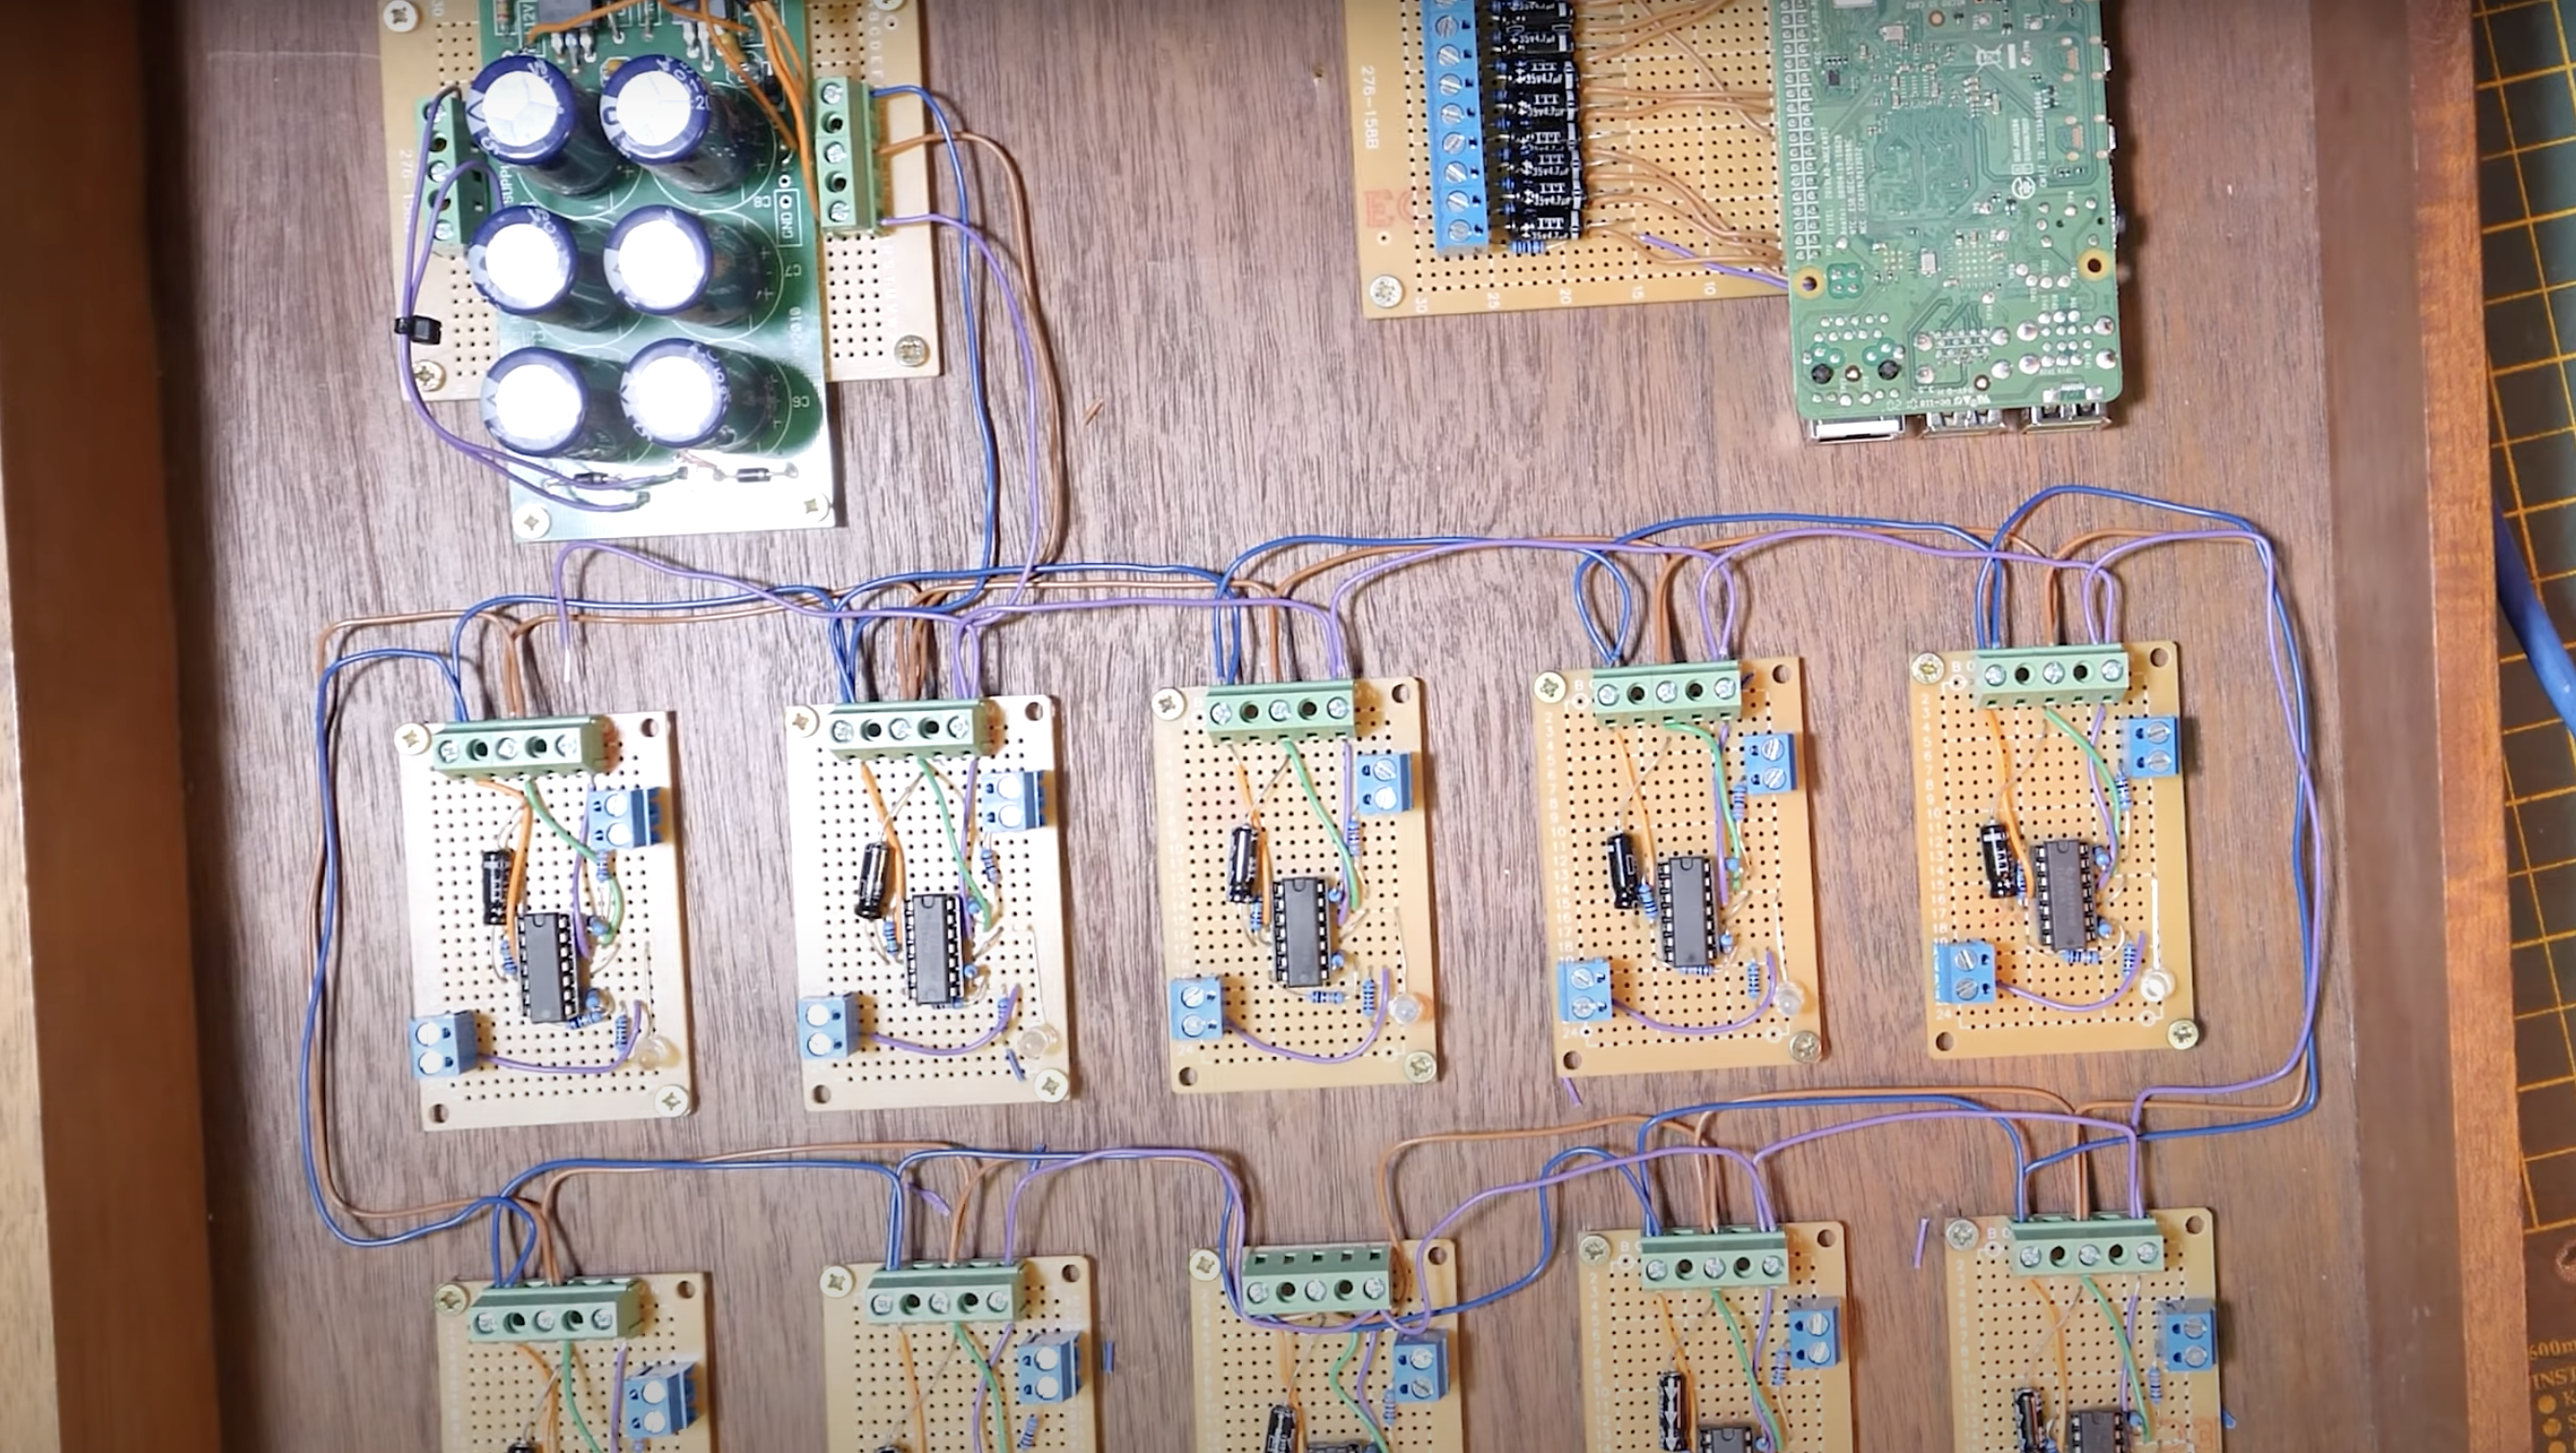 The analogue circuits inside the cryptocurrency music instrument.